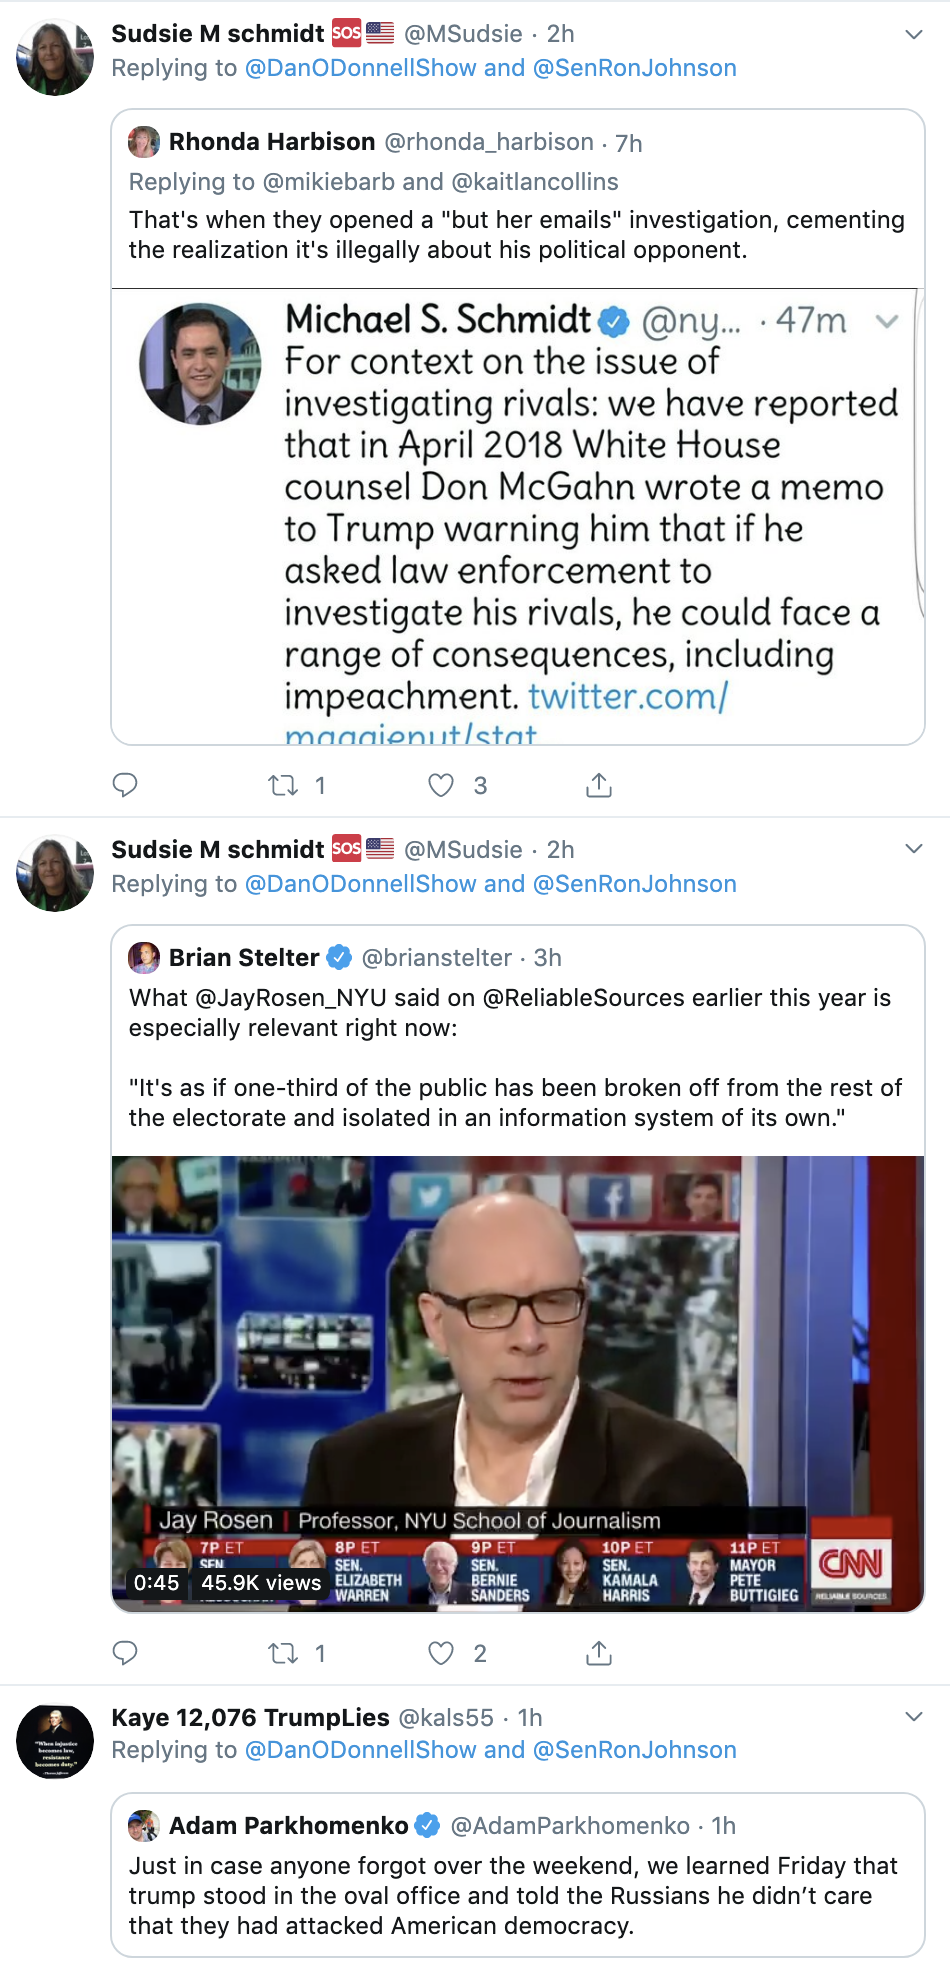 2ca70ec5-screen-shot-2019-09-30-at-3.10.21-pm GOP'r Drinks Trump's Kool-Aid - Ukraine Scandal No Biggie Corruption Crime Domestic Policy Donald Trump Election 2020 Featured Foreign Policy Impeachment Investigation National Security Politics Top Stories